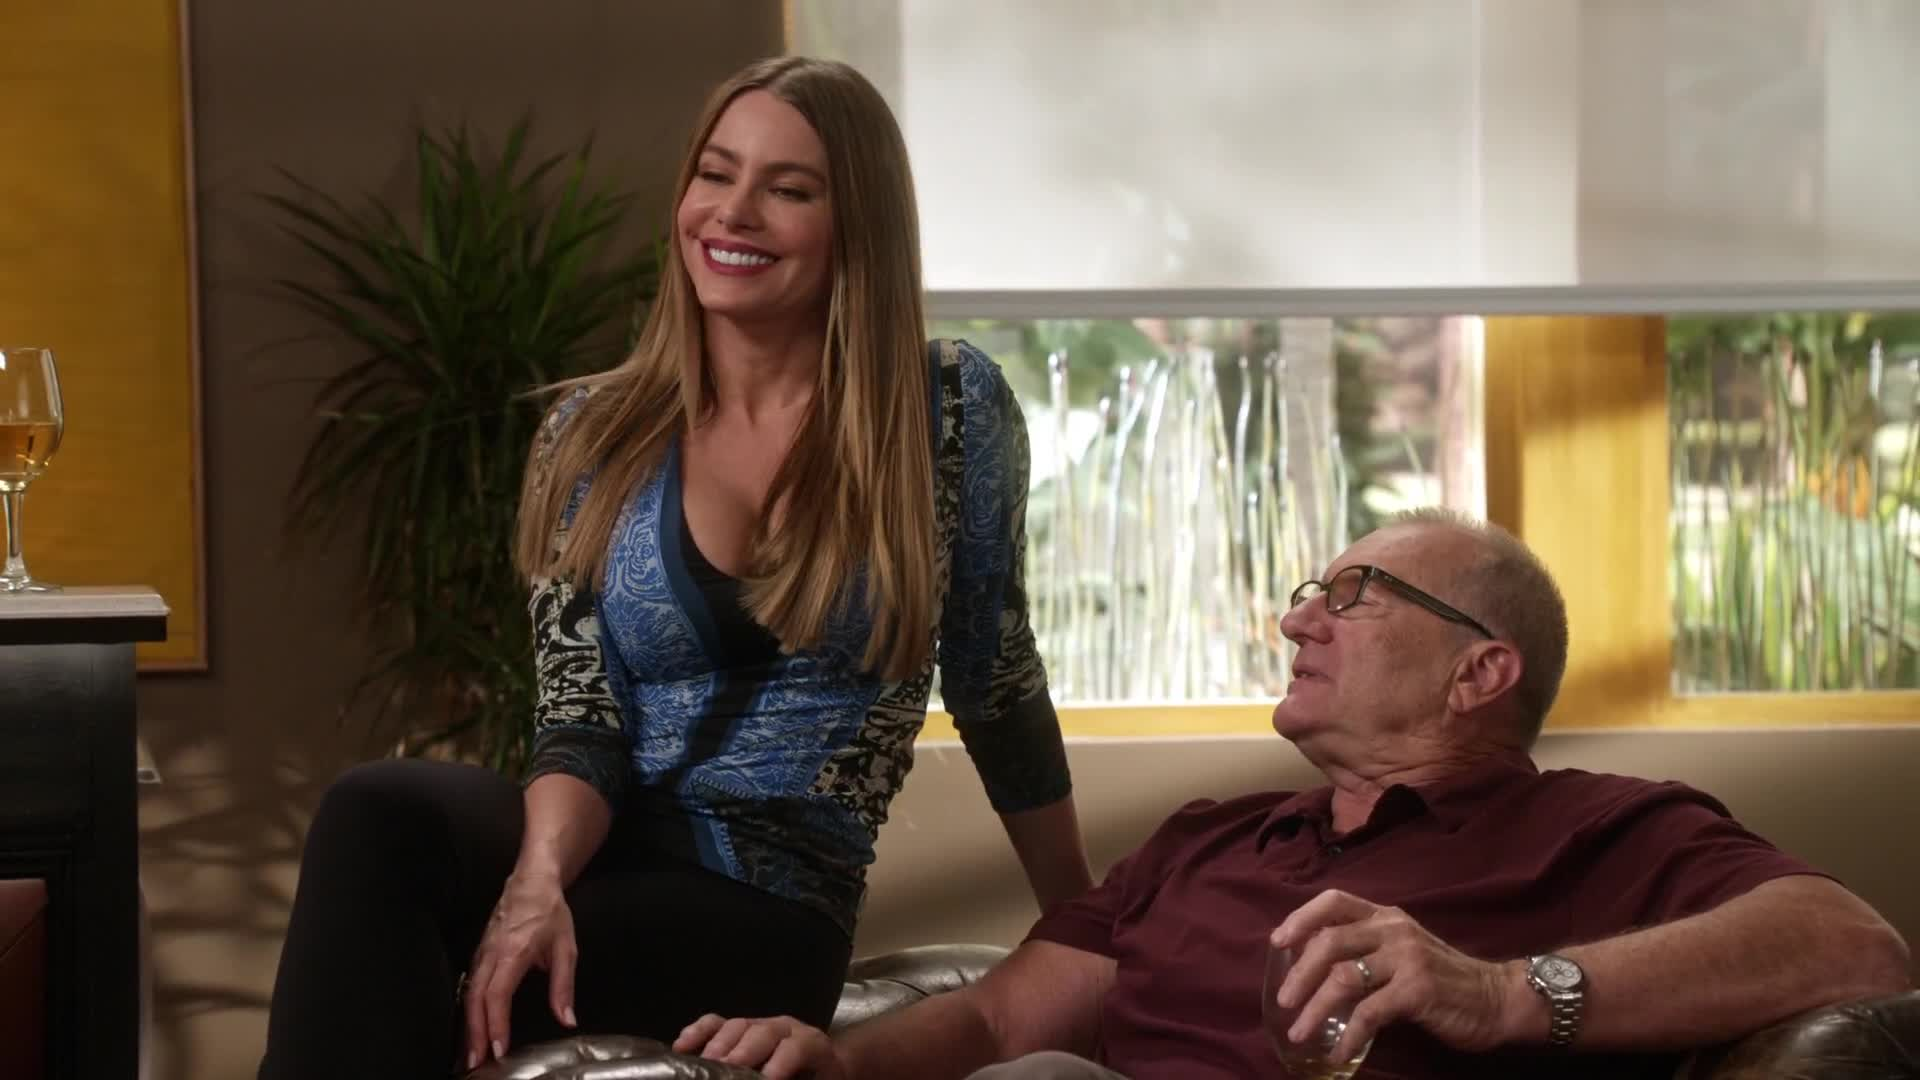 Sofia Vergara sexy cleavage sitting in couch scene from Modern Family